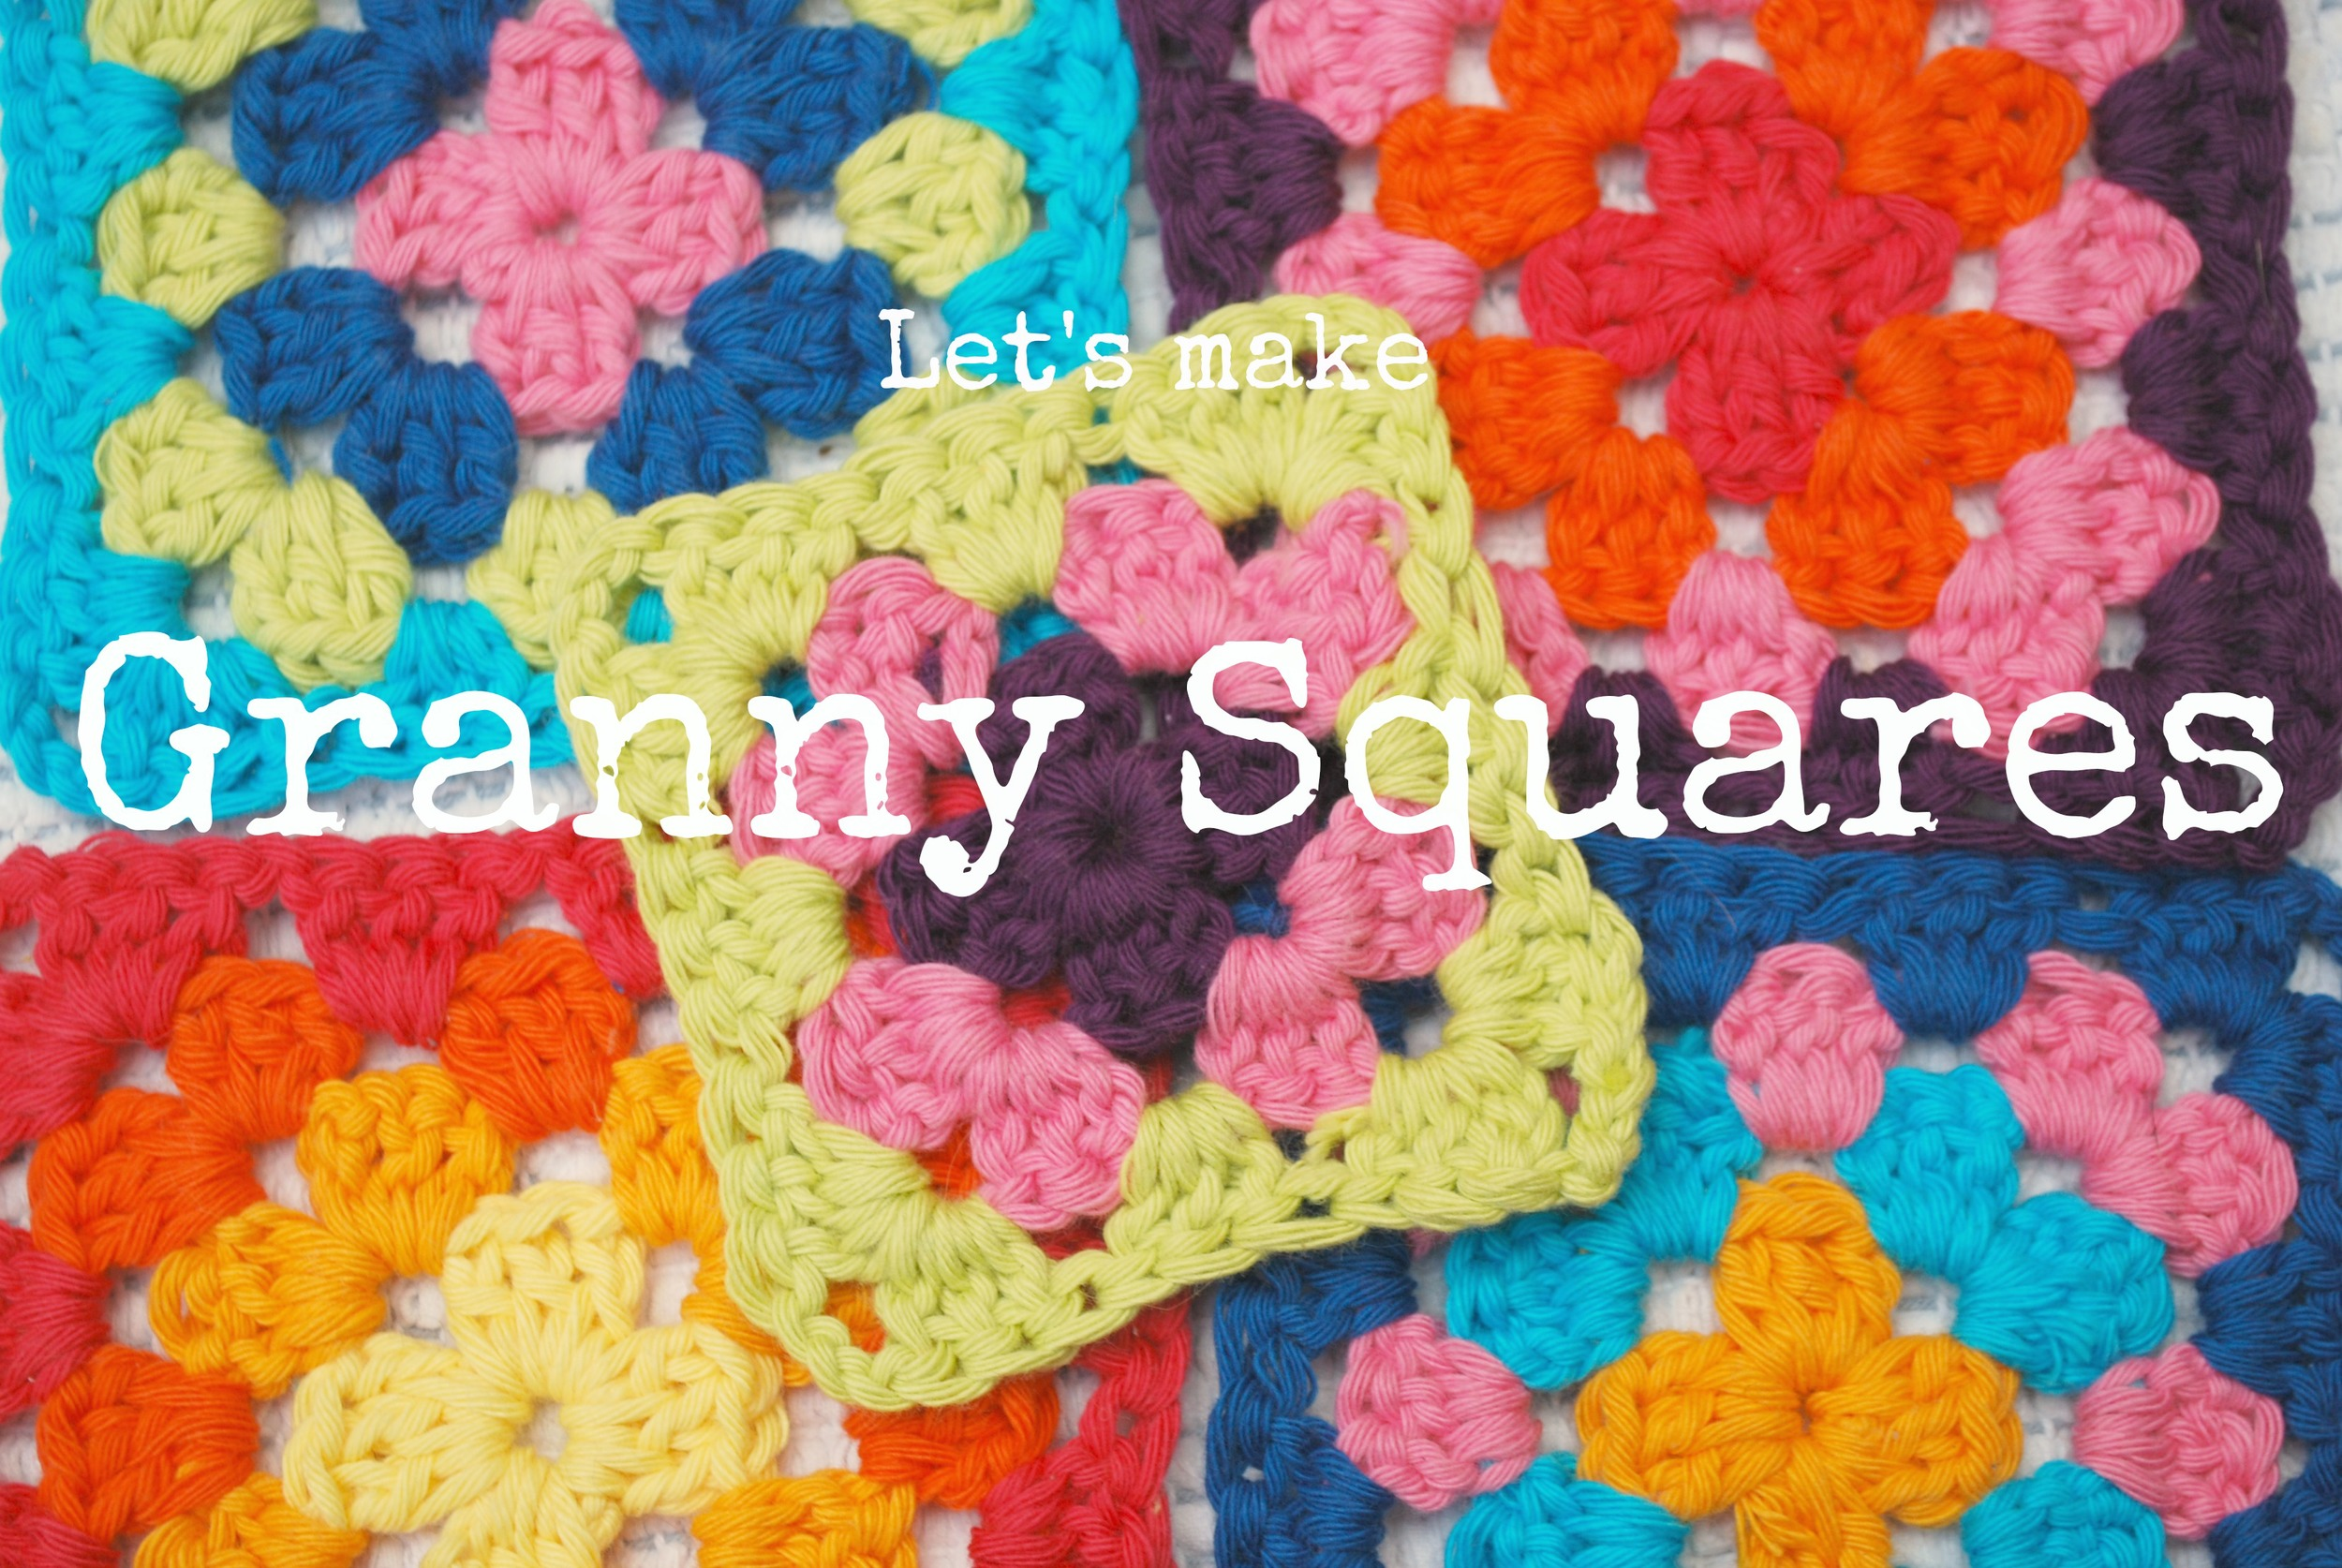 Let's make granny squares tutorial